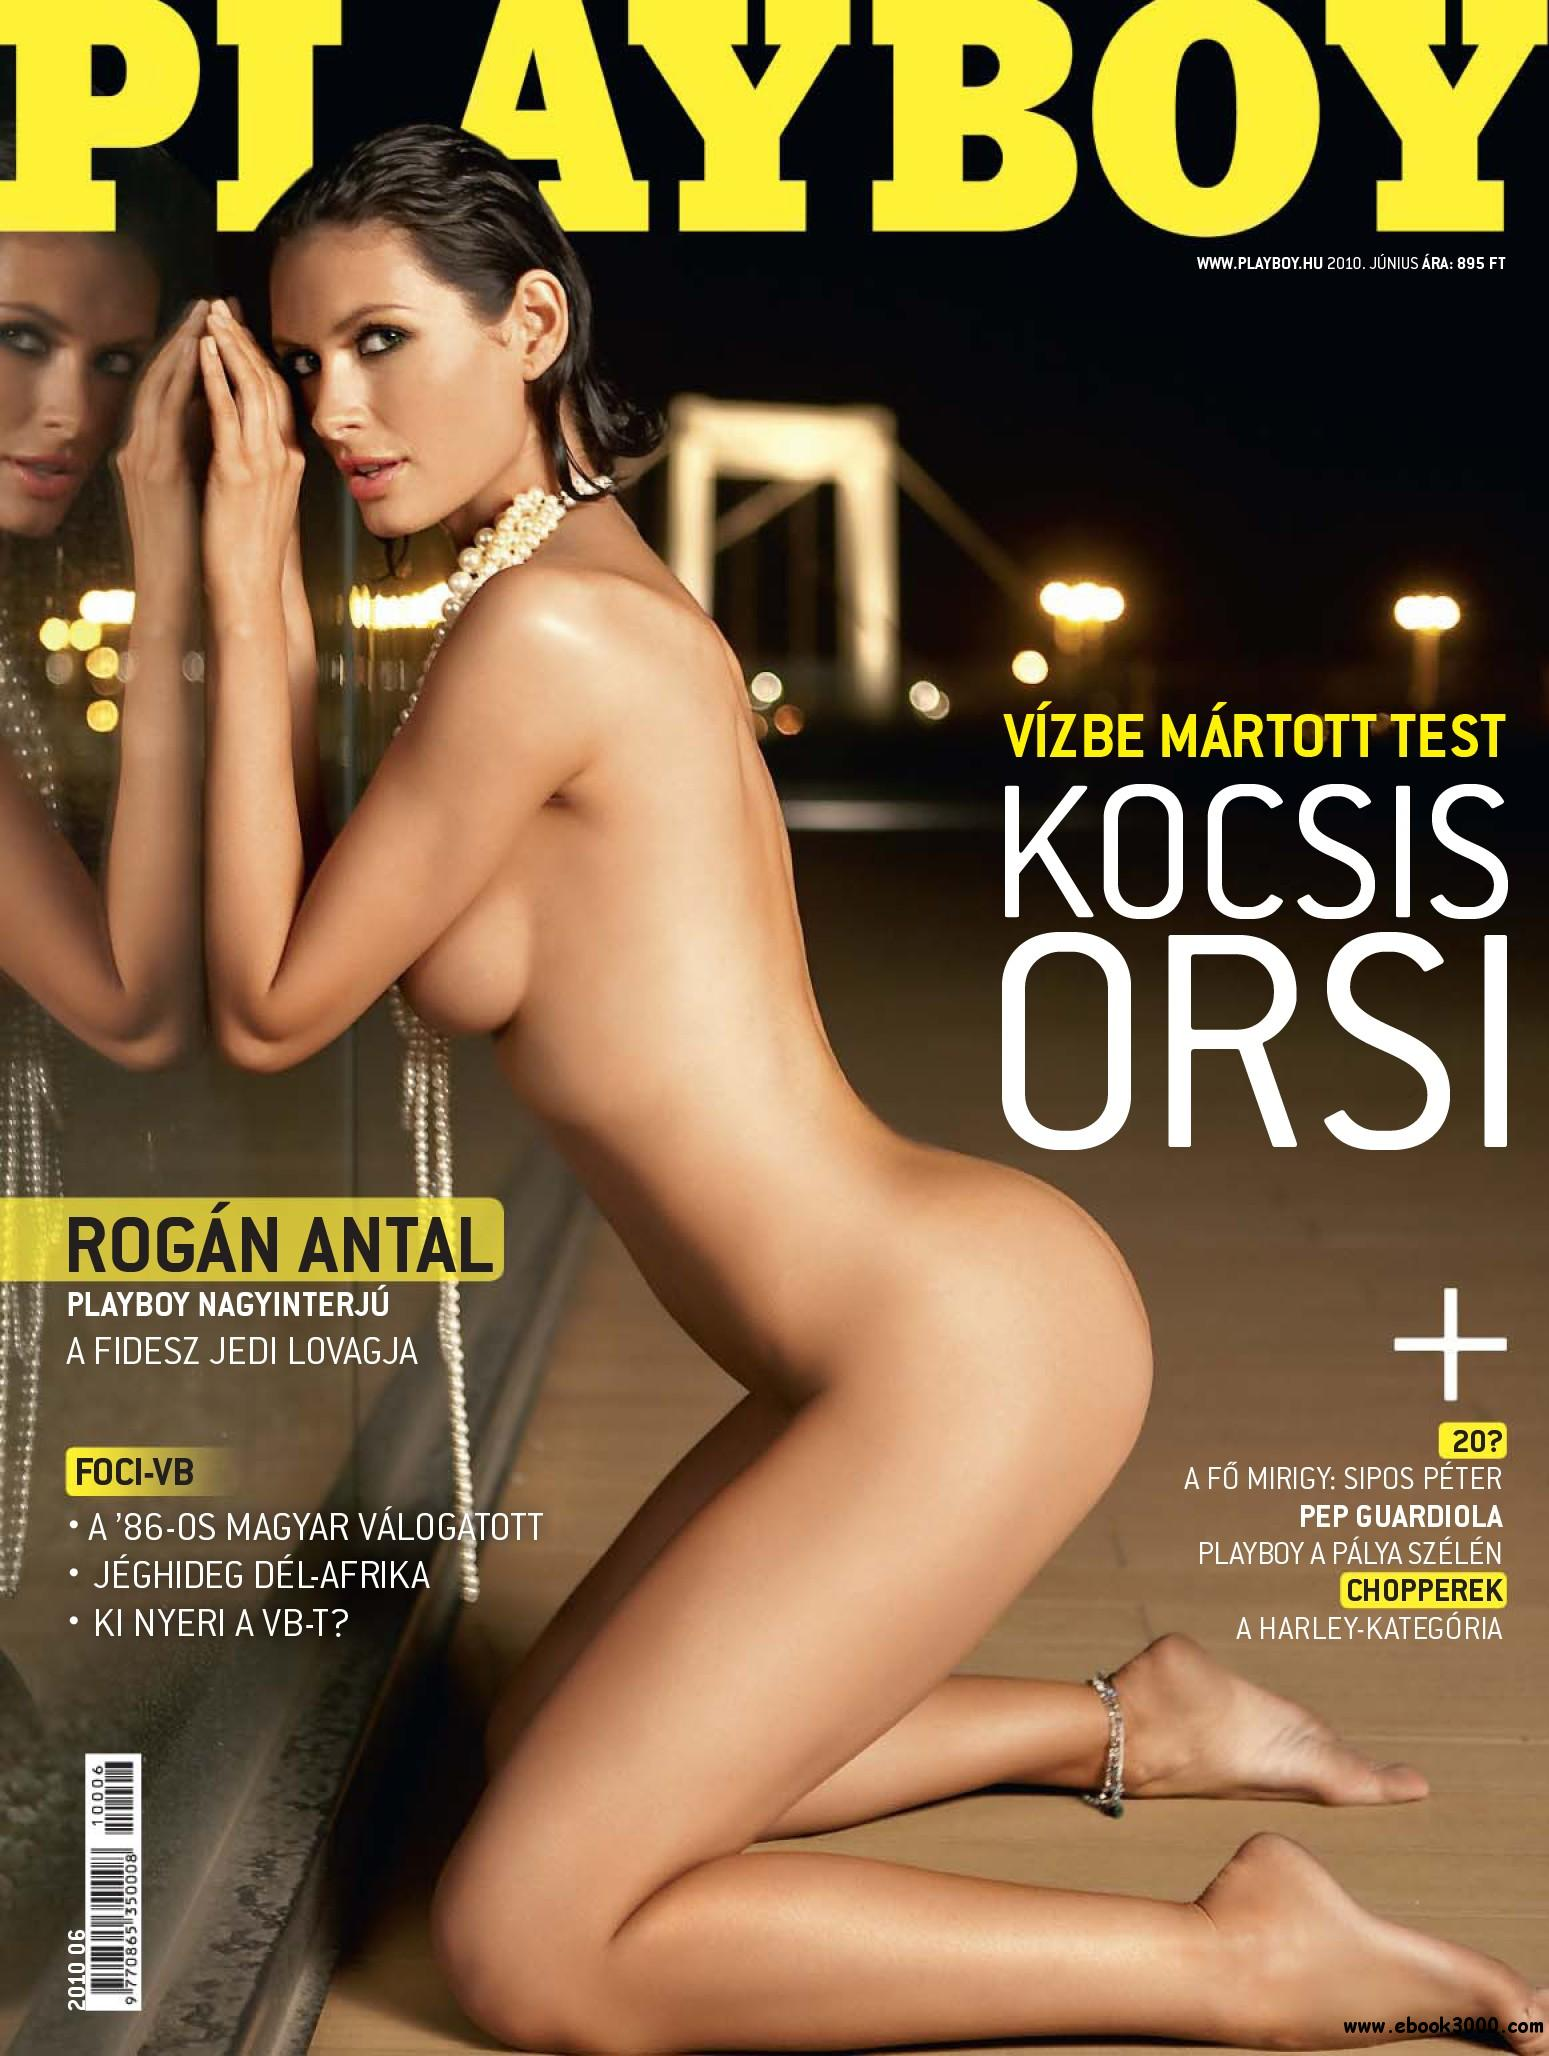 Playboy Hungary - June 2010 free download